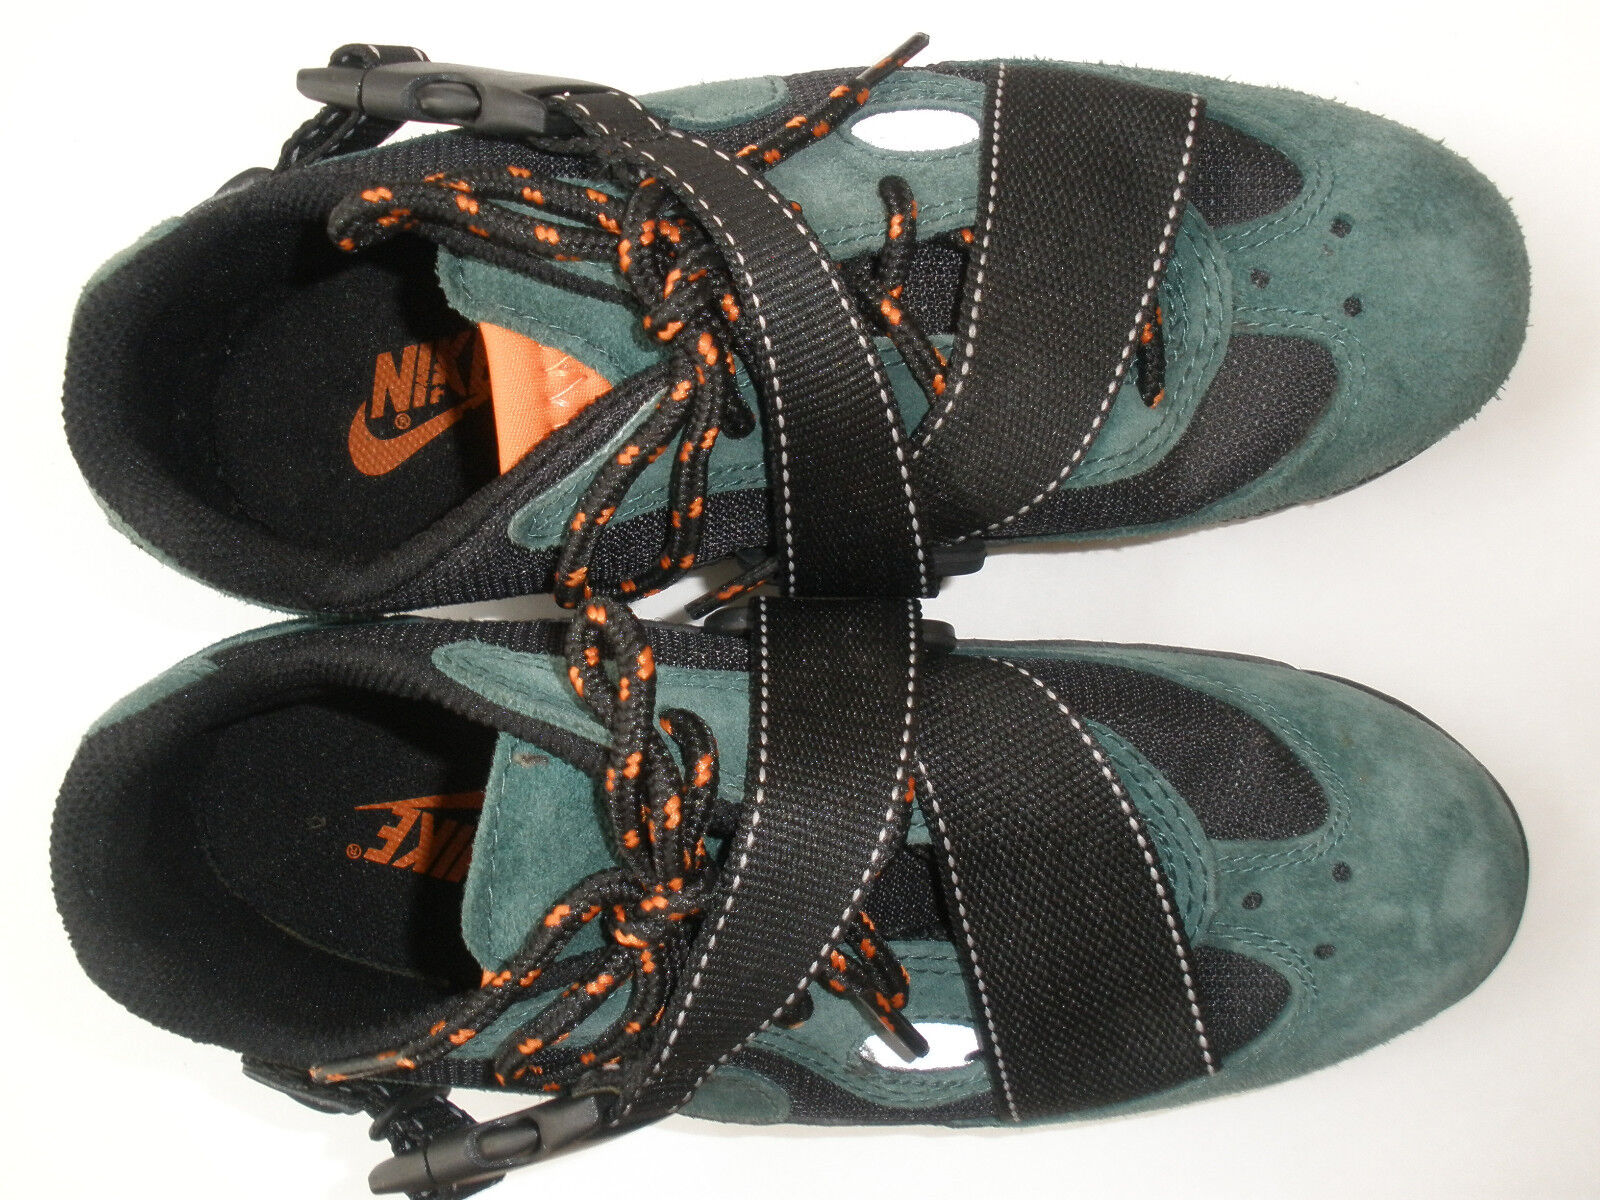 1996 NIKE ACG CYCLING LEATHER SHOES MEN SIZE 5.5 RARE VINTAGE NICE